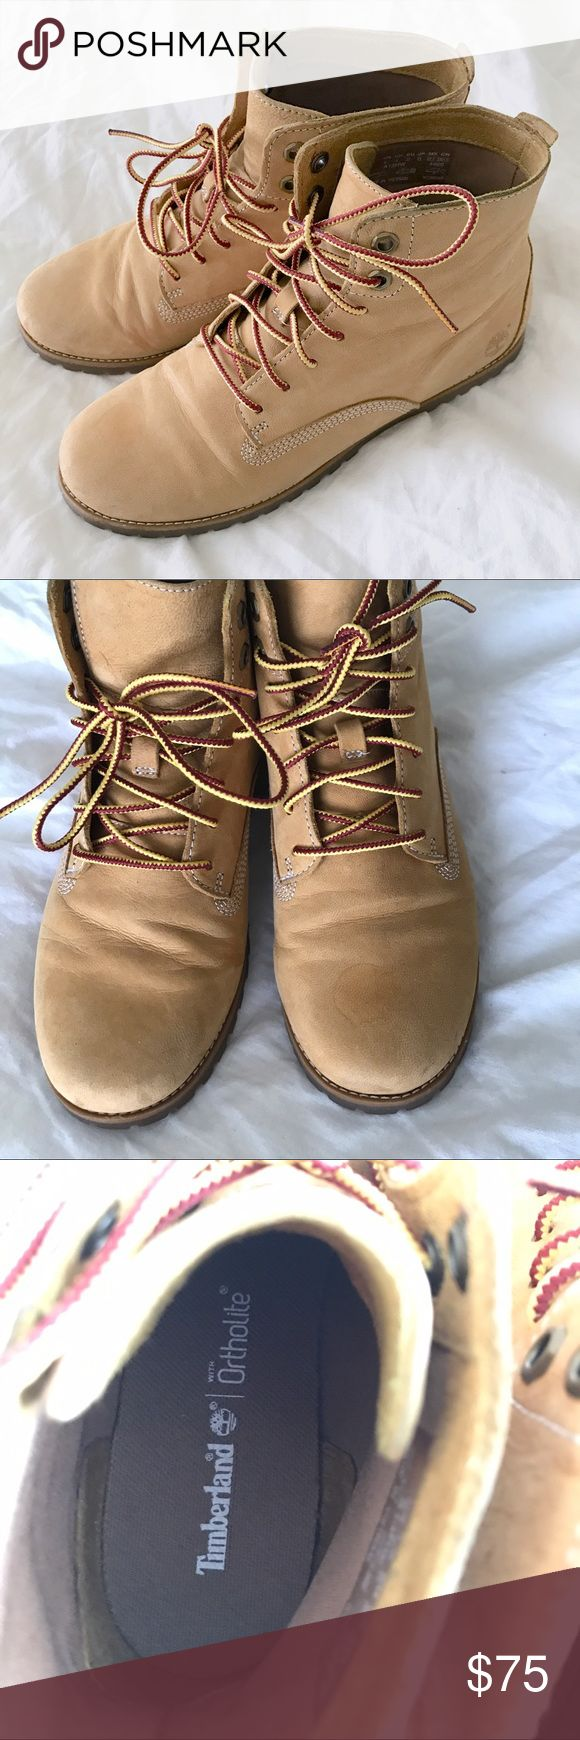 Ortholite Timberland Joslin Chukka Boots Super light and comfy boot that's perfect for spring! Minimal signs of wear. Watermark on tip of the boot is due to a drop of hand sanitizer. May be able to wash out! From Timberland website: Uppers are lightweight nubuck leather Laces and linings are made from 50% PET (recycled plastic bottles) Lace-up styling Anti-odor OrthoLite® footbed for breathability and all-day comfort Durable lug outsole is made with 15% recycled rubber Shaft height is 4.5…